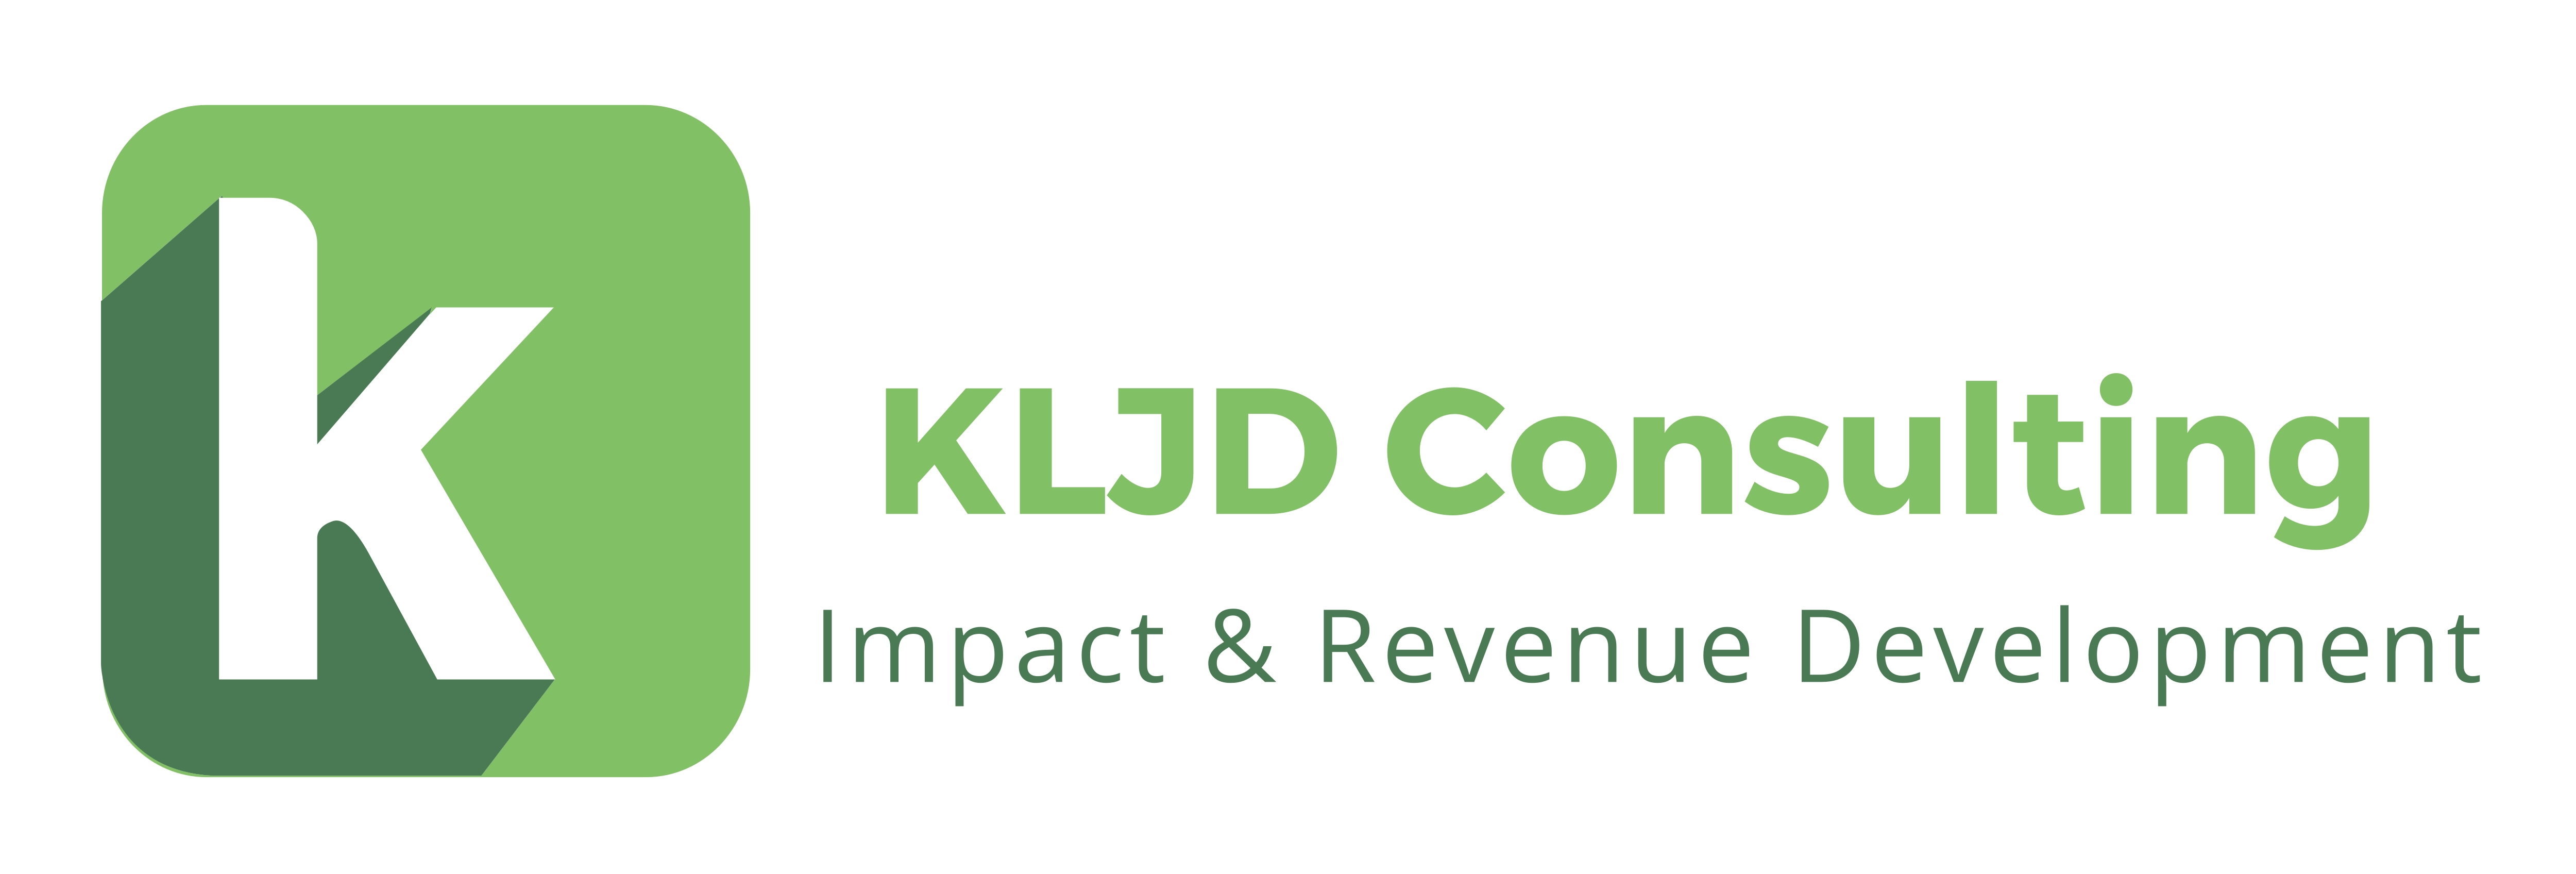 KLJD Consulting logo